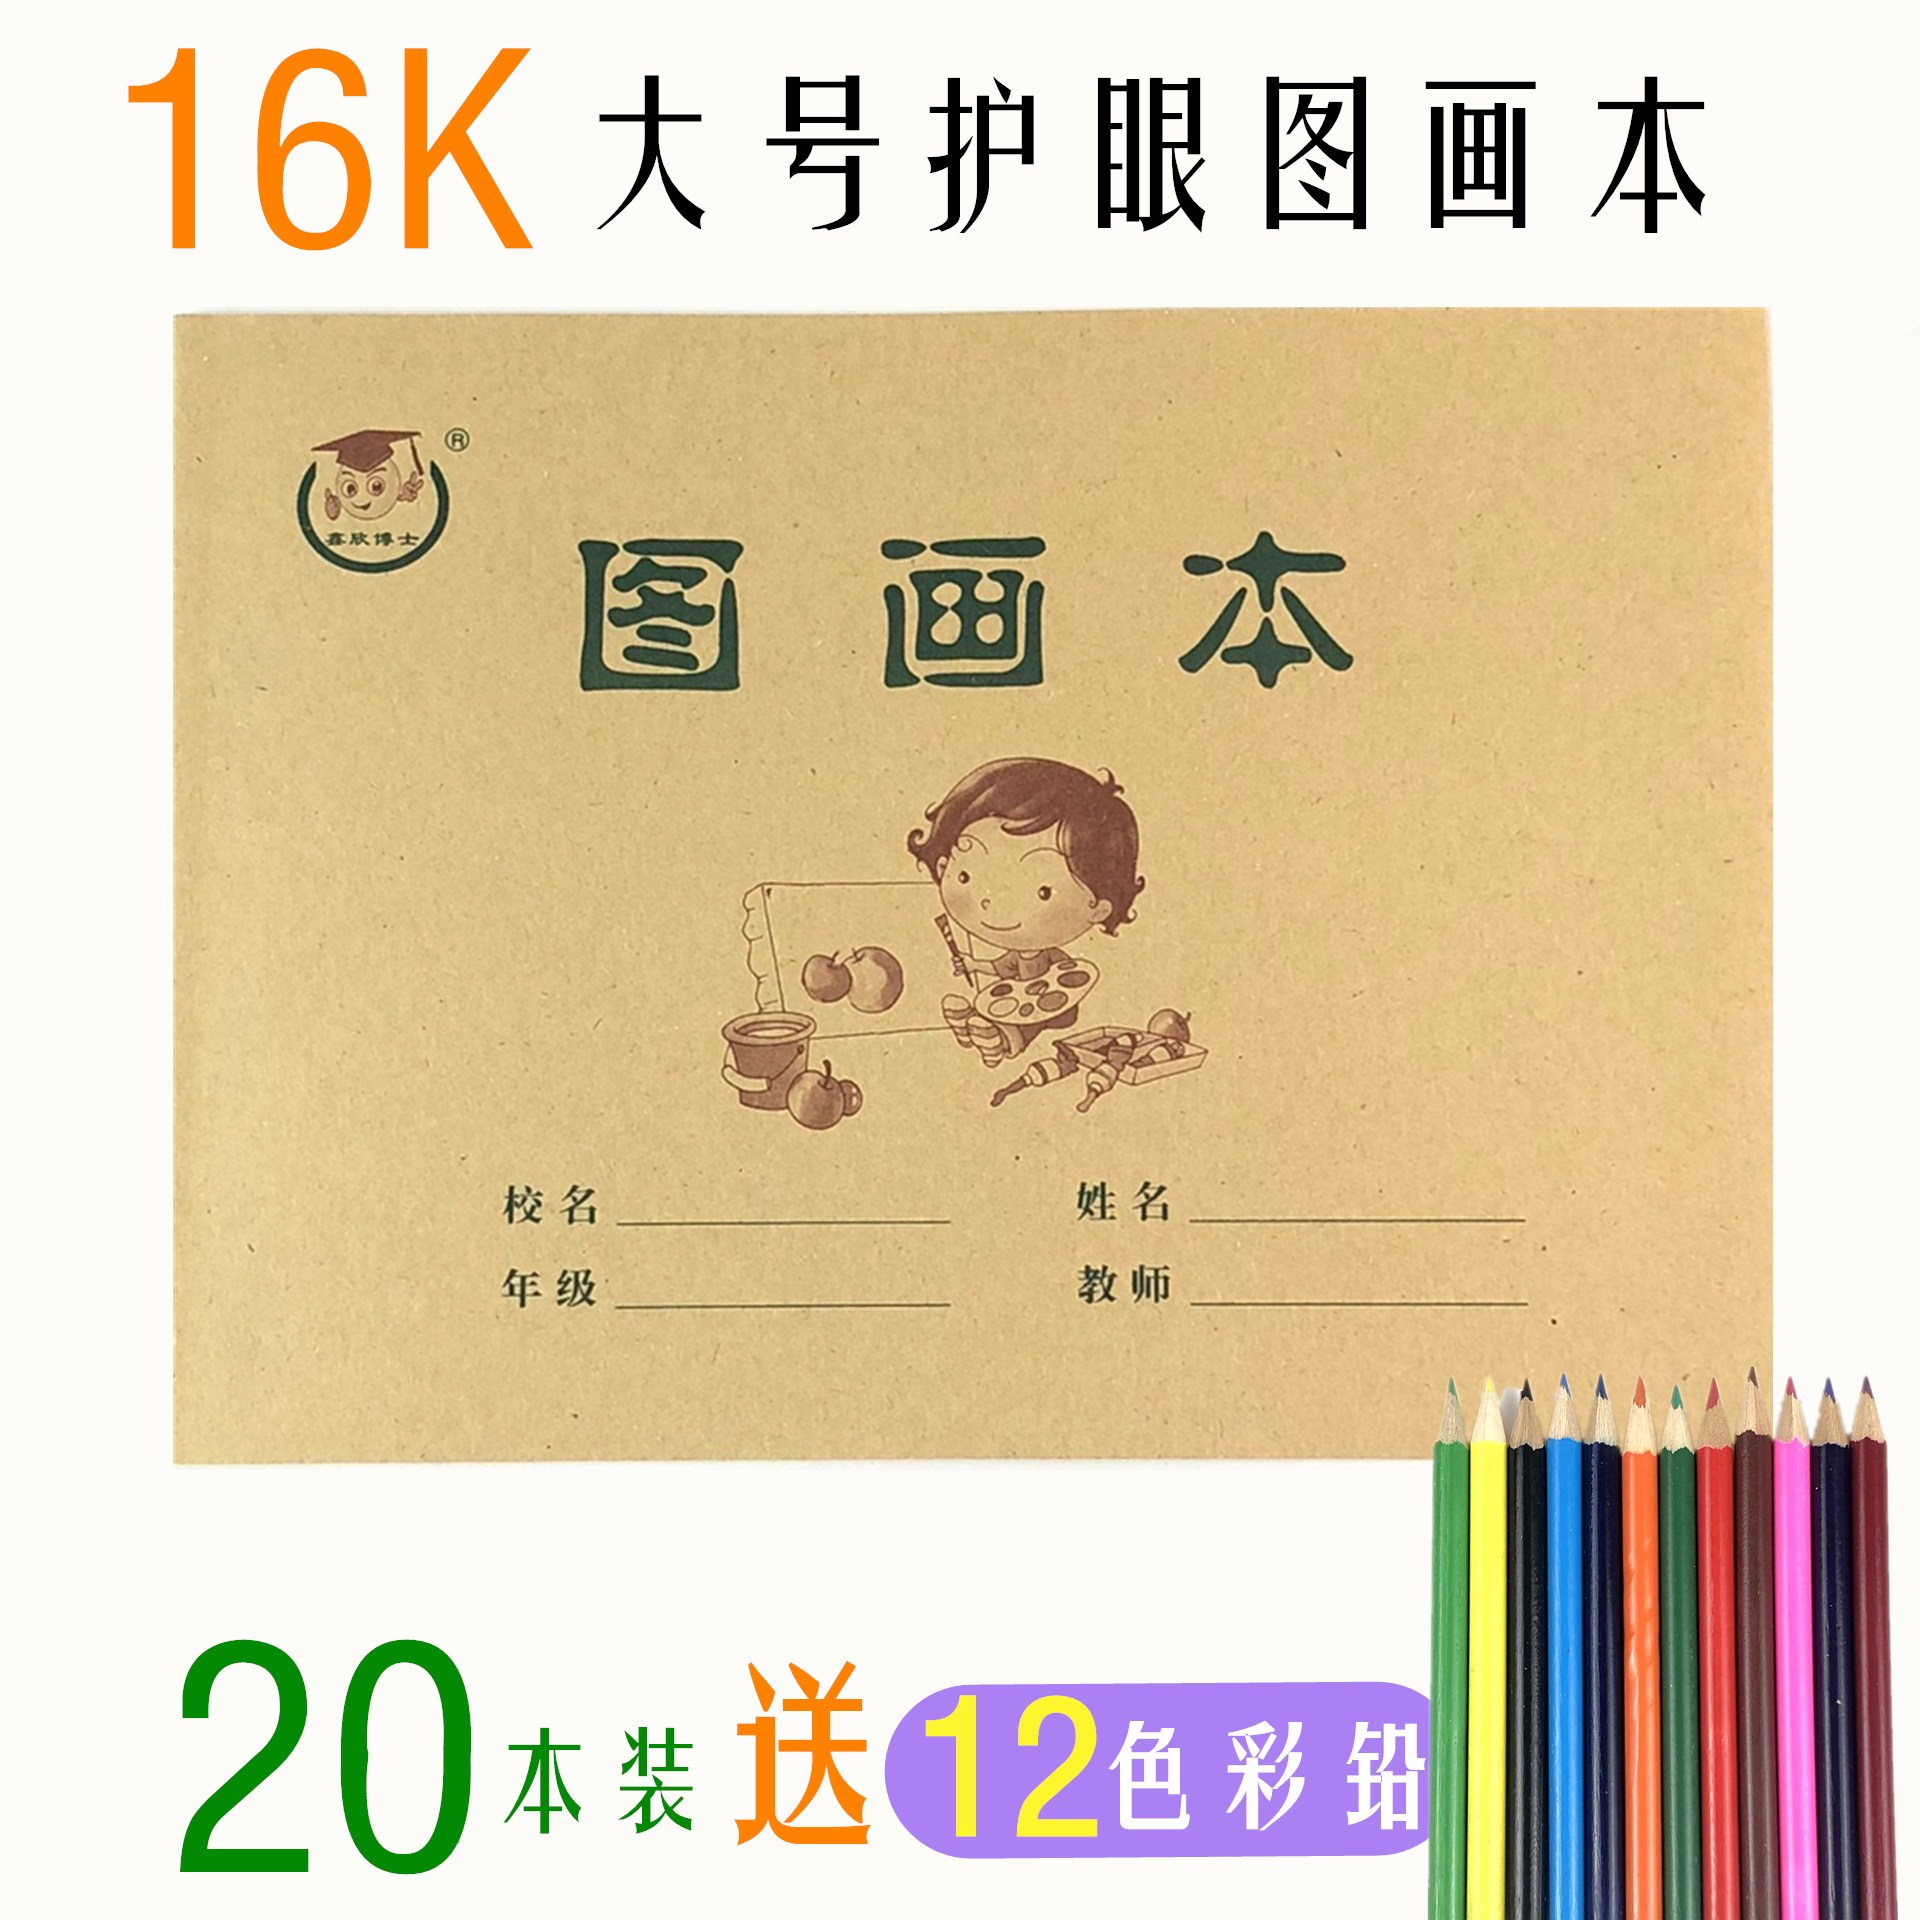 16K LARGE PICTURE BOOK (20 COPIES) TO SEND COLOR LEAD